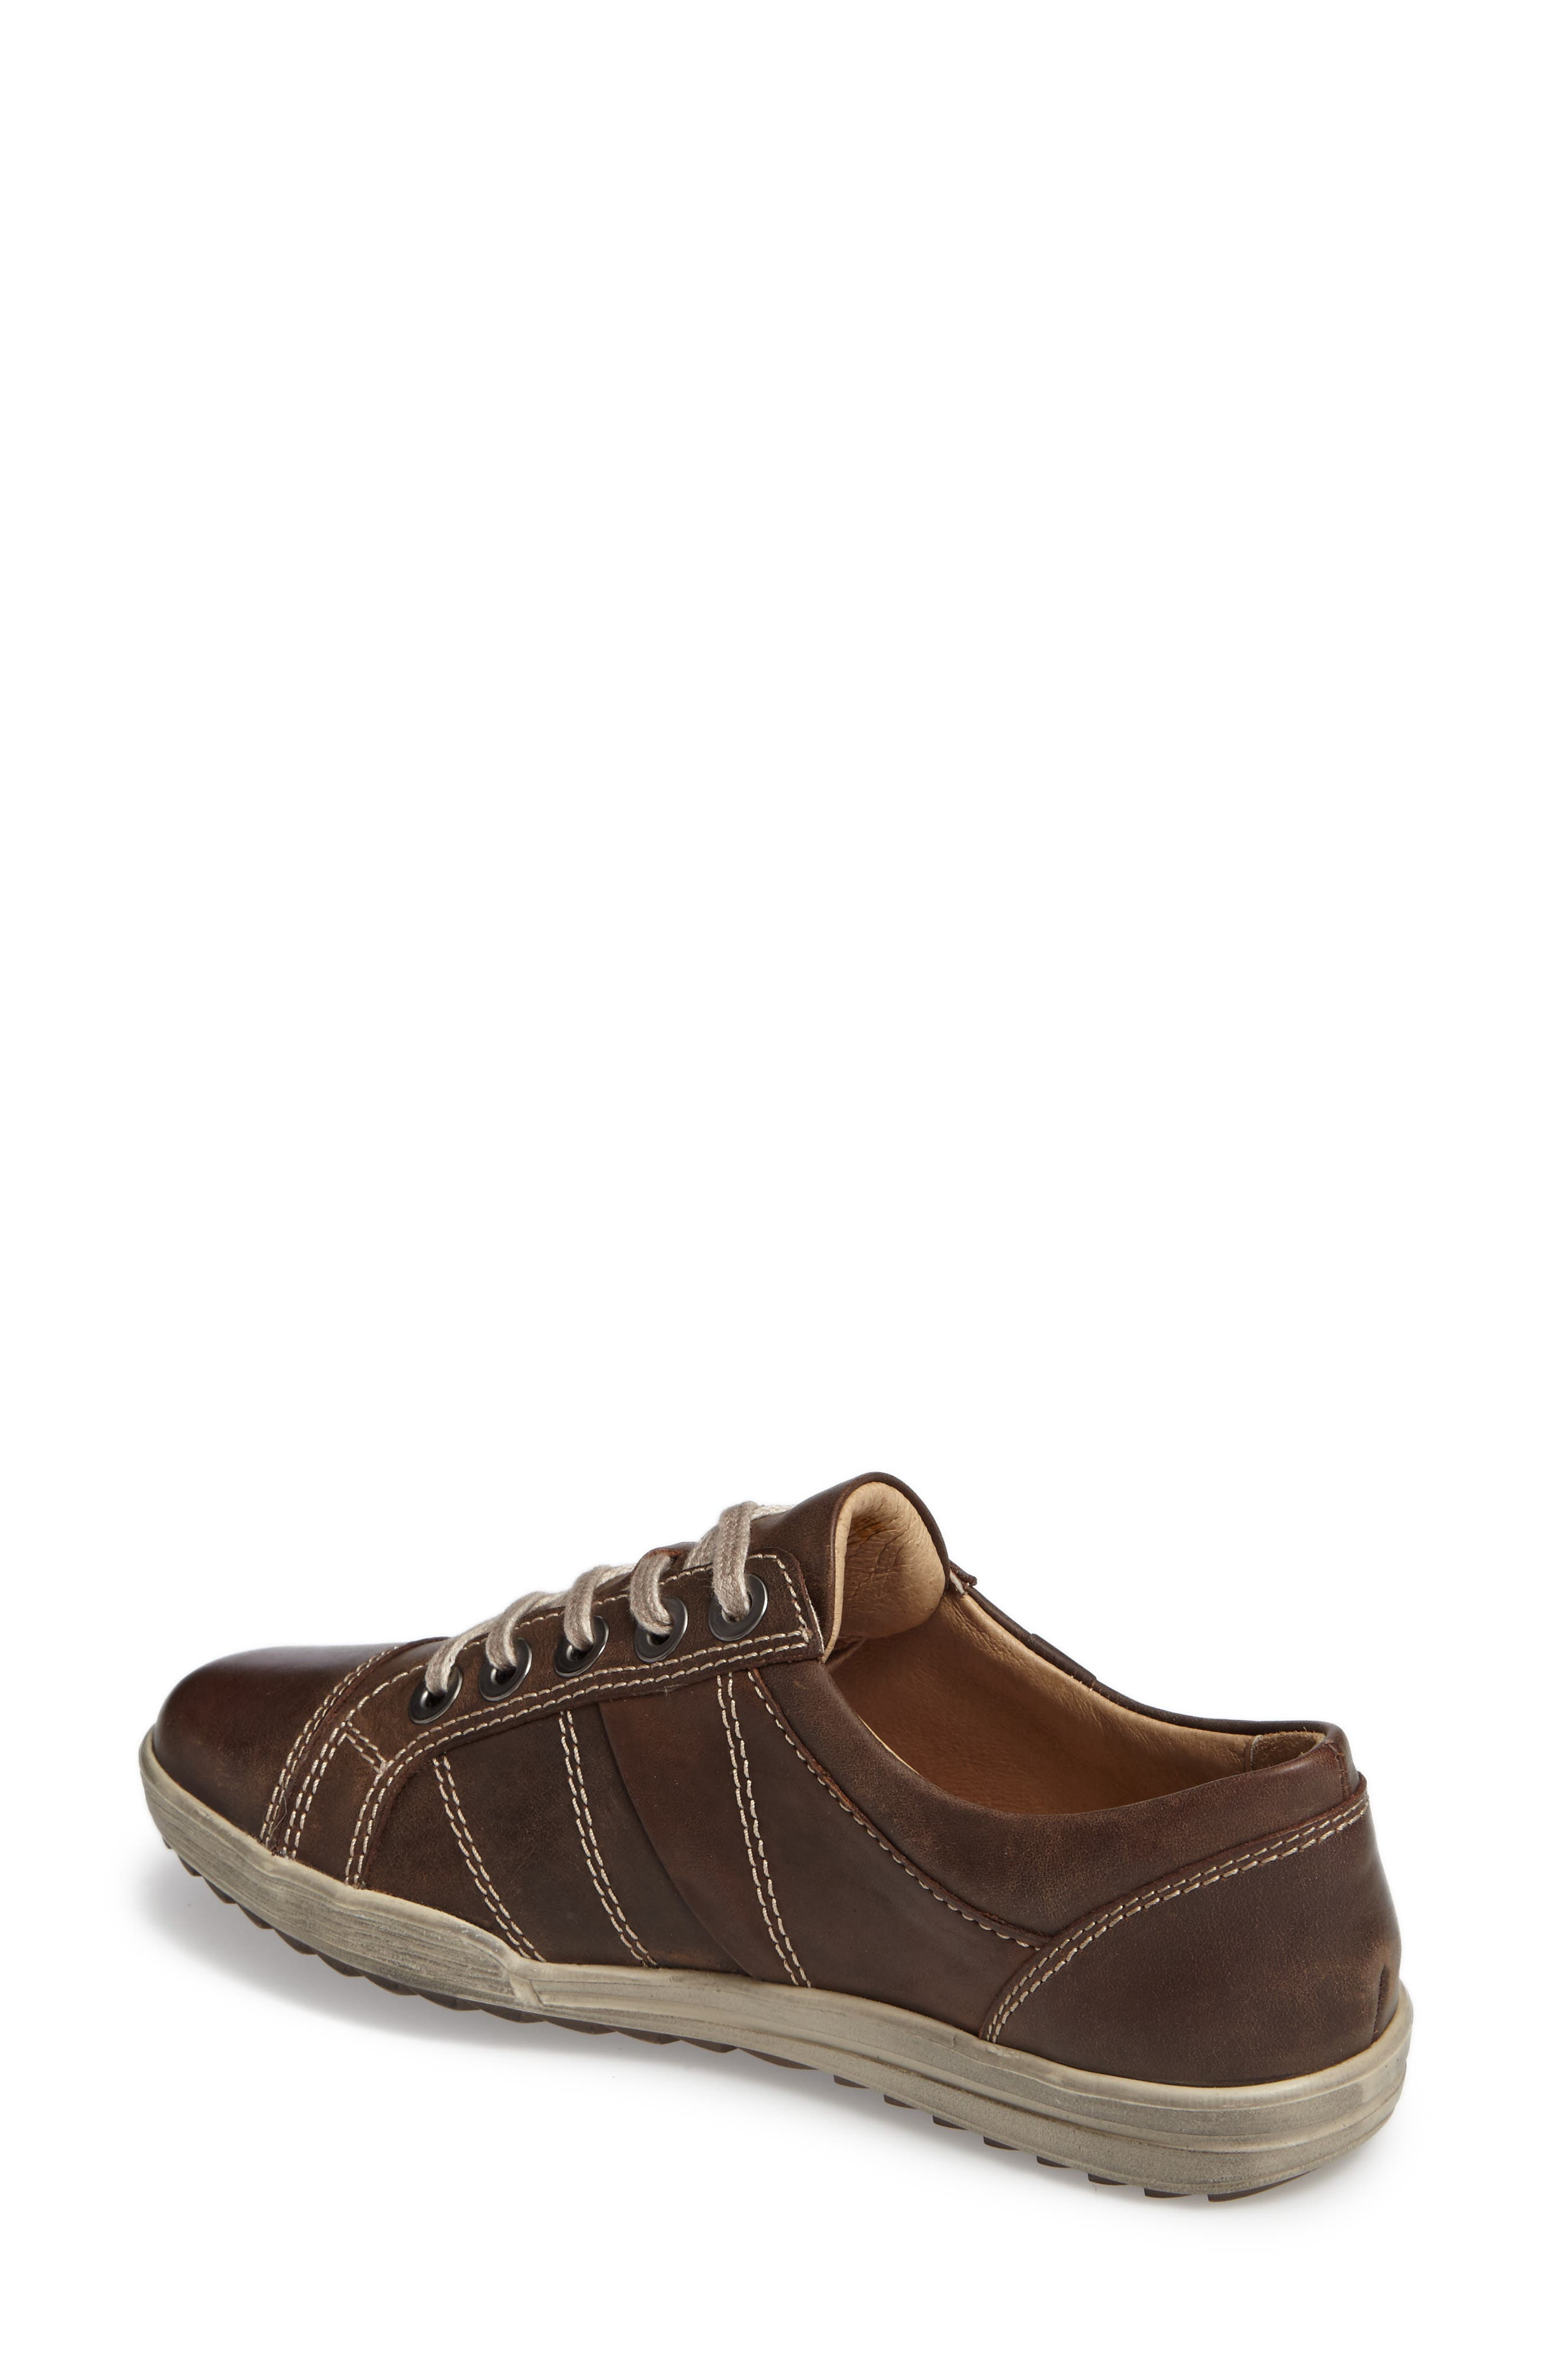 'Dany 05' Leather Sneaker,                             Alternate thumbnail 15, color,